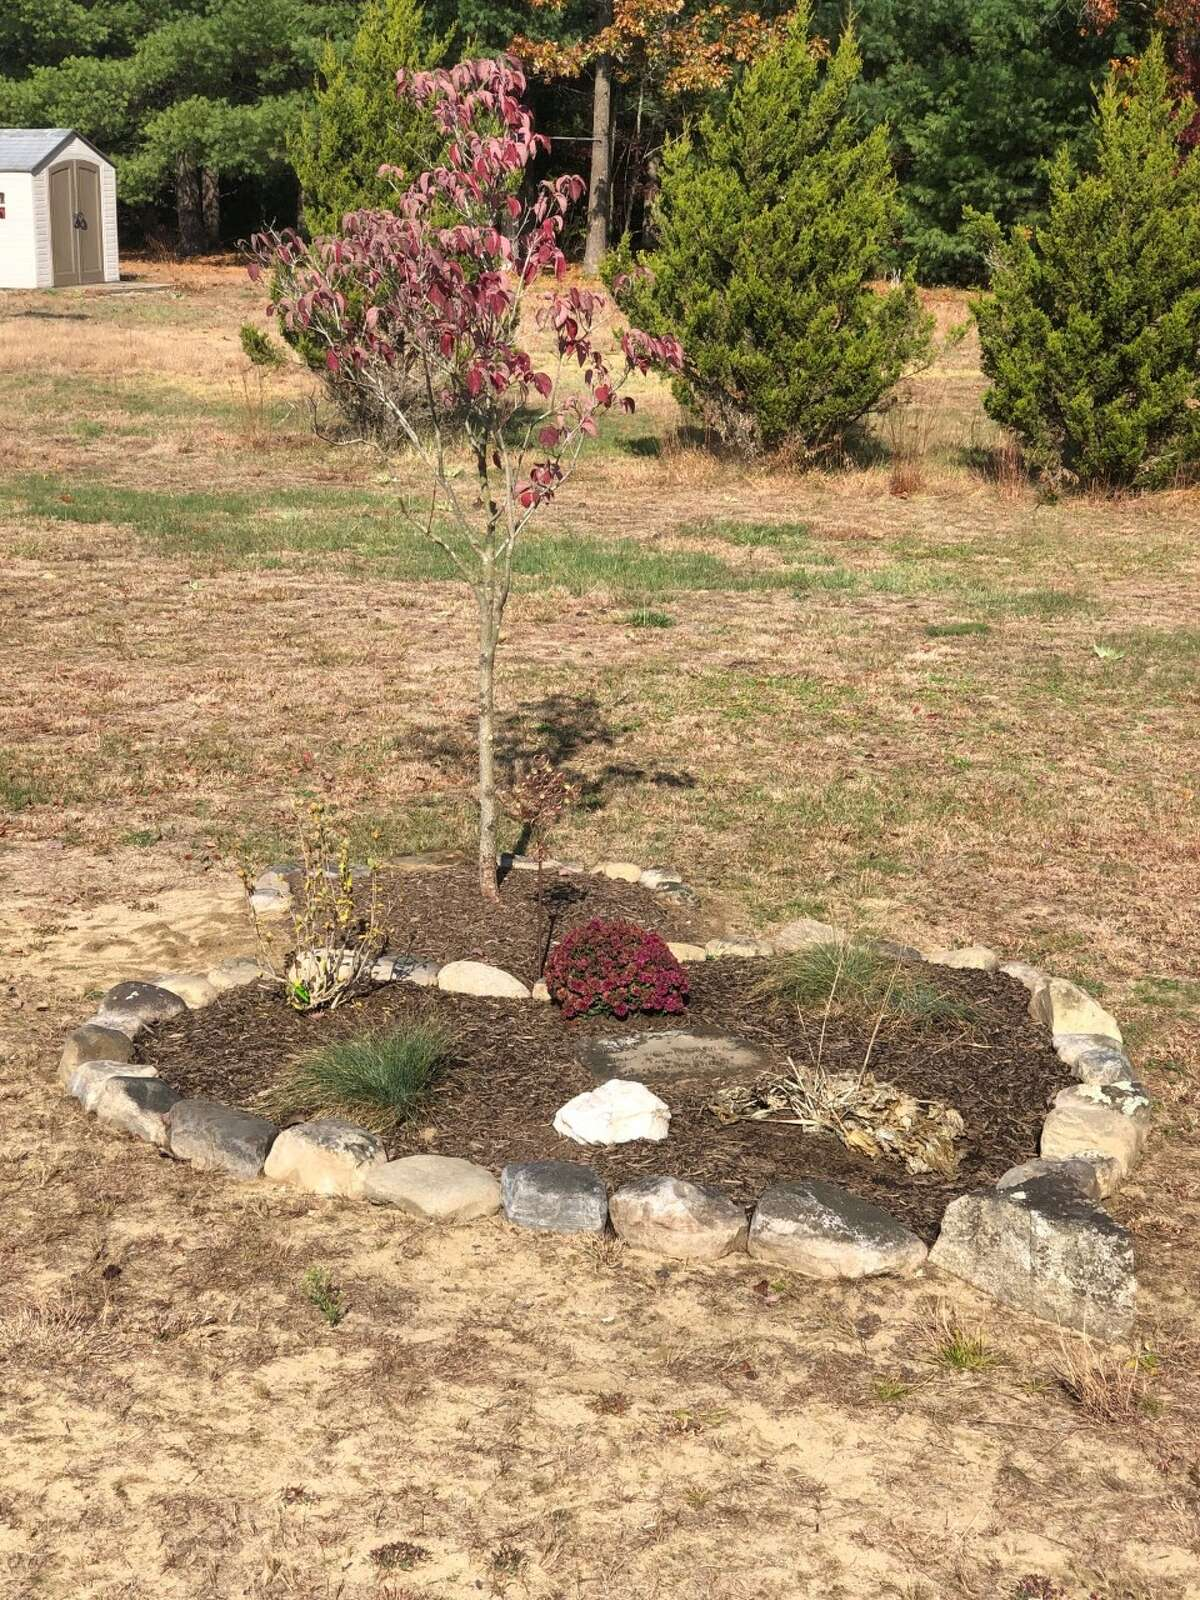 A heart-shaped garden and tree planted in memory of Barbara Goodwin at the Gateway House of Peace, 479 Rowland St., Ballston Spa. The Gateway House of Peace, 479 Rowland St., Ballston Spa.